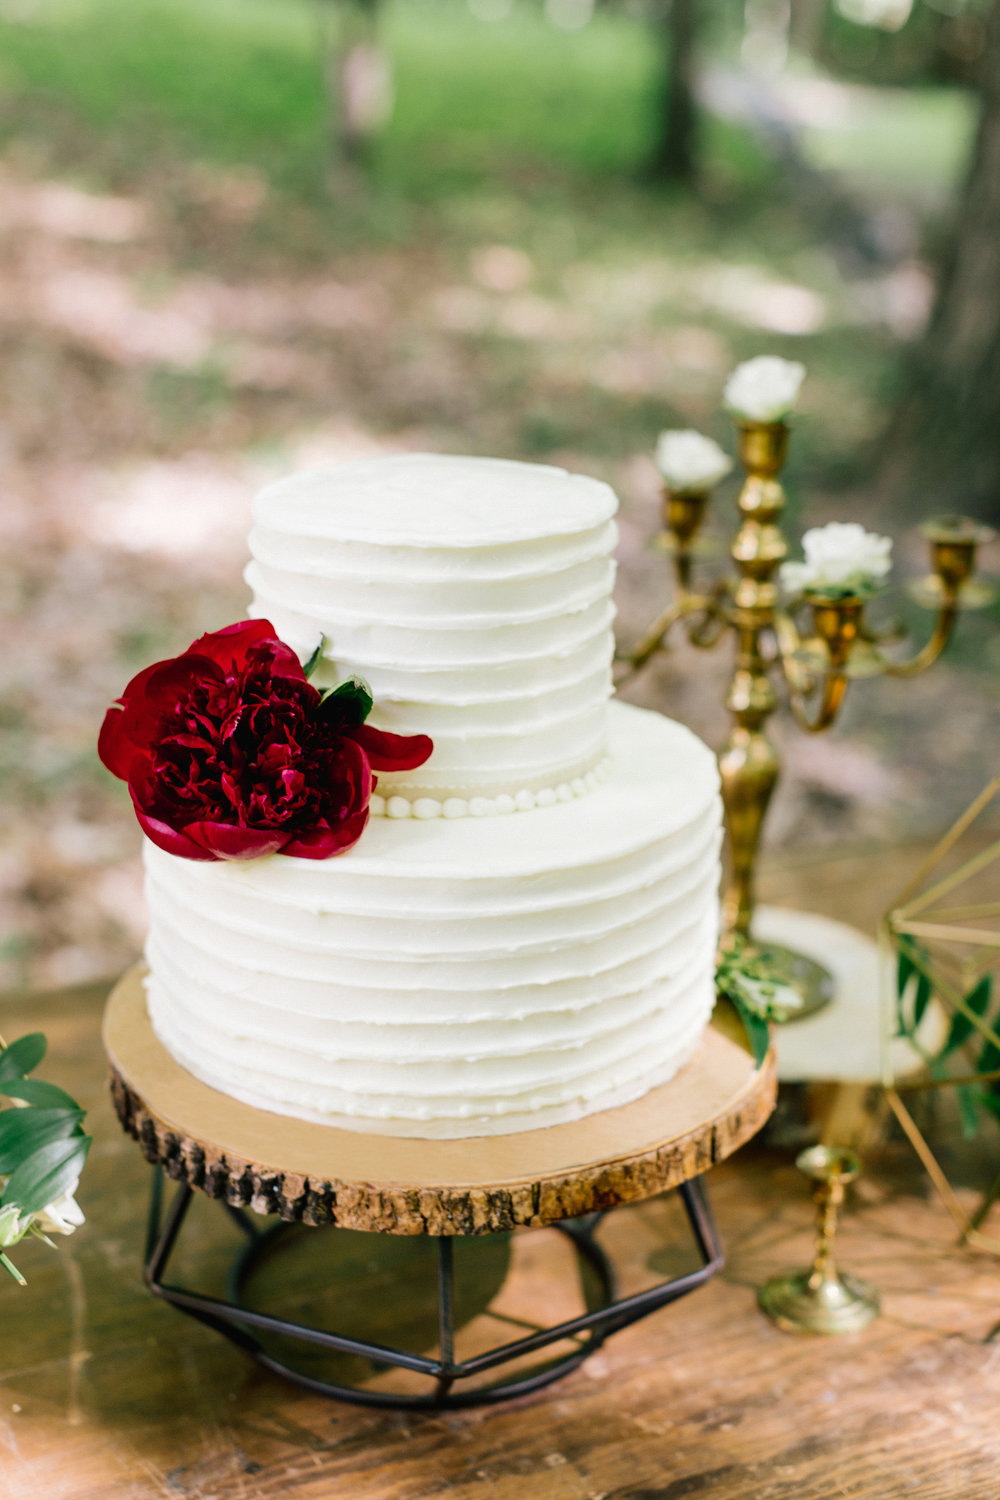 Allison_Hopperstad_Photography_Acowsay_Wedding_Cake.JPG